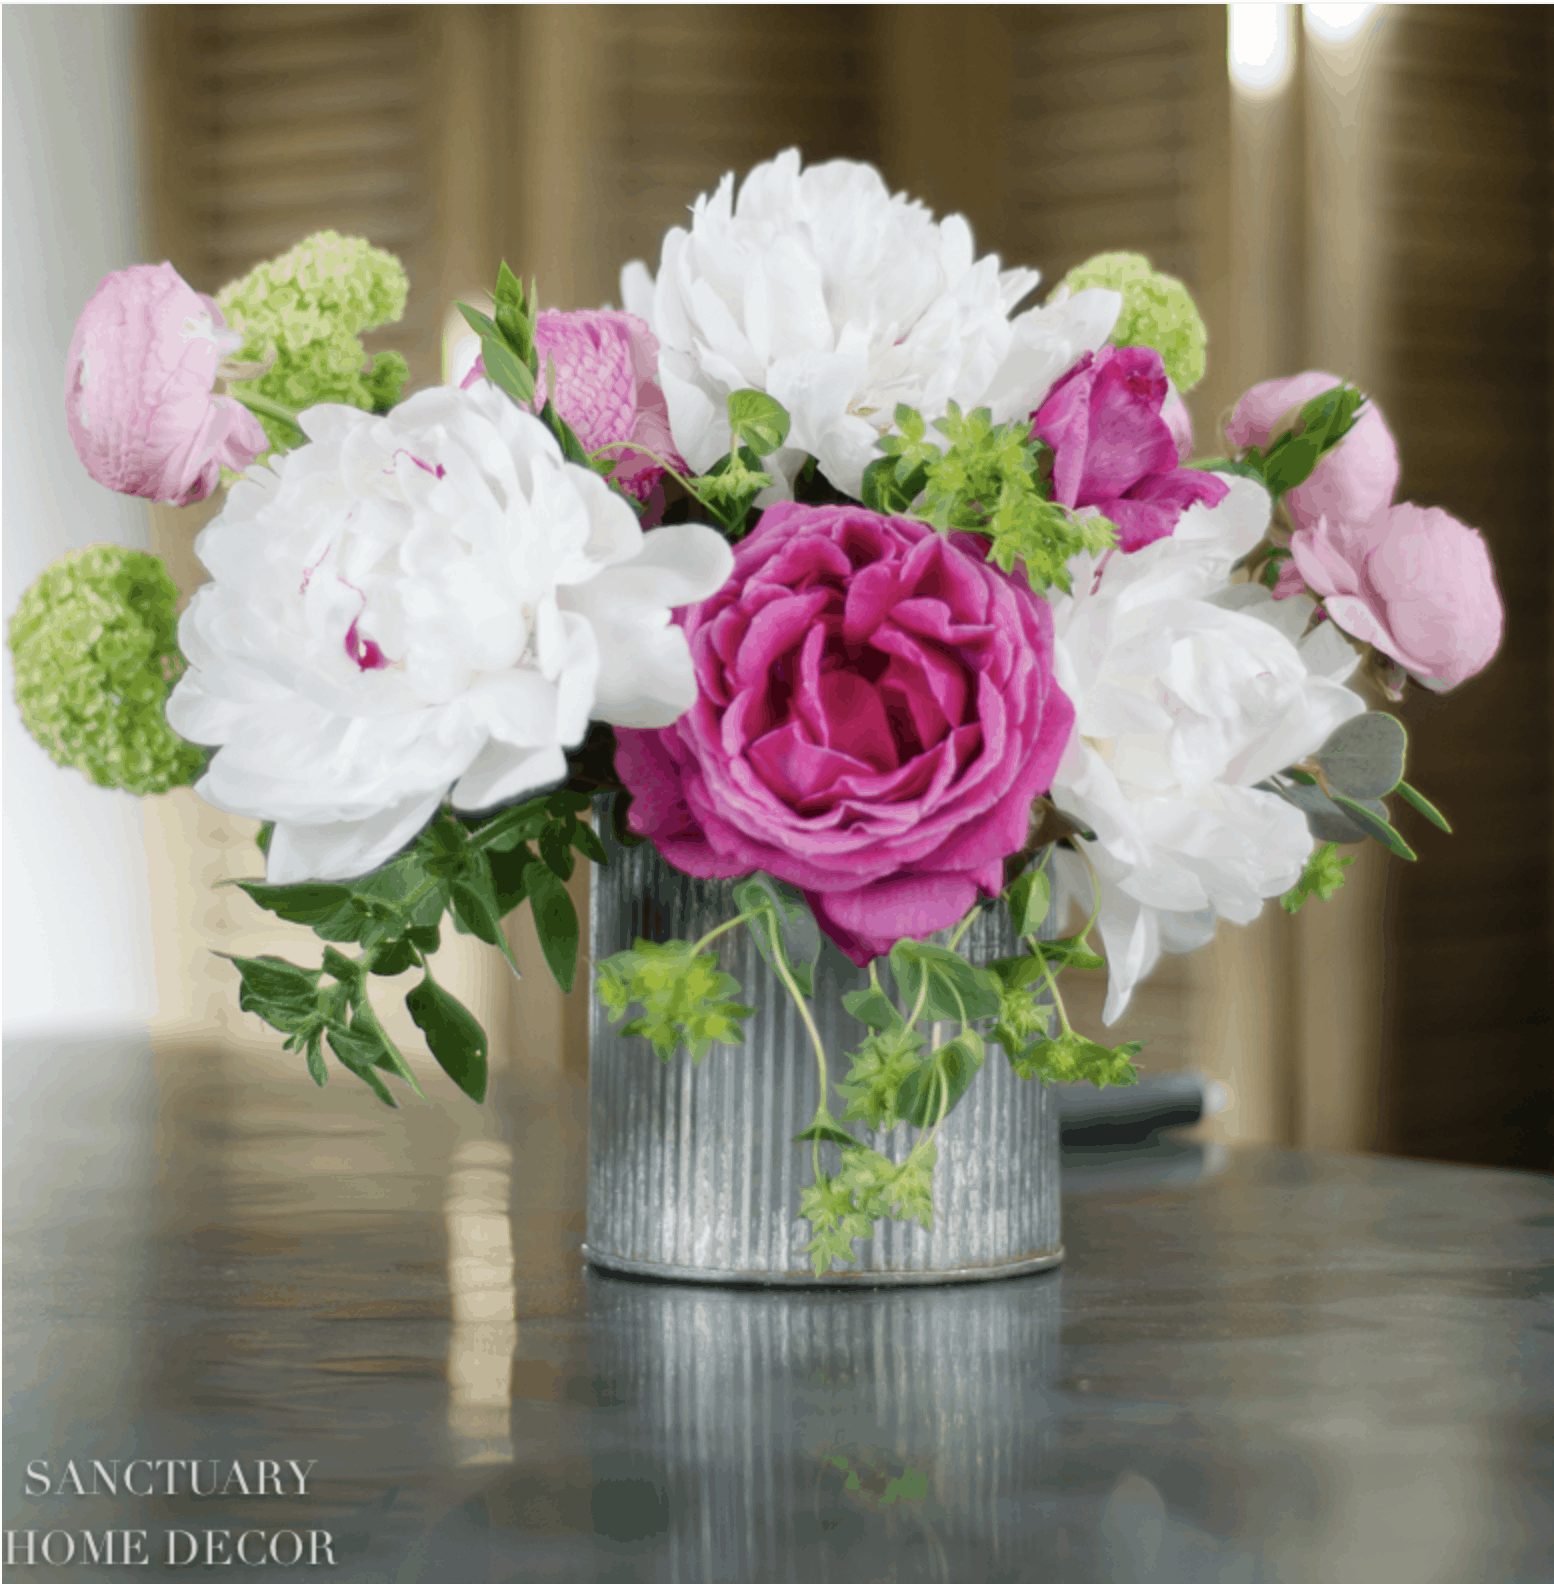 Make this spring arrangement in 3 easy steps